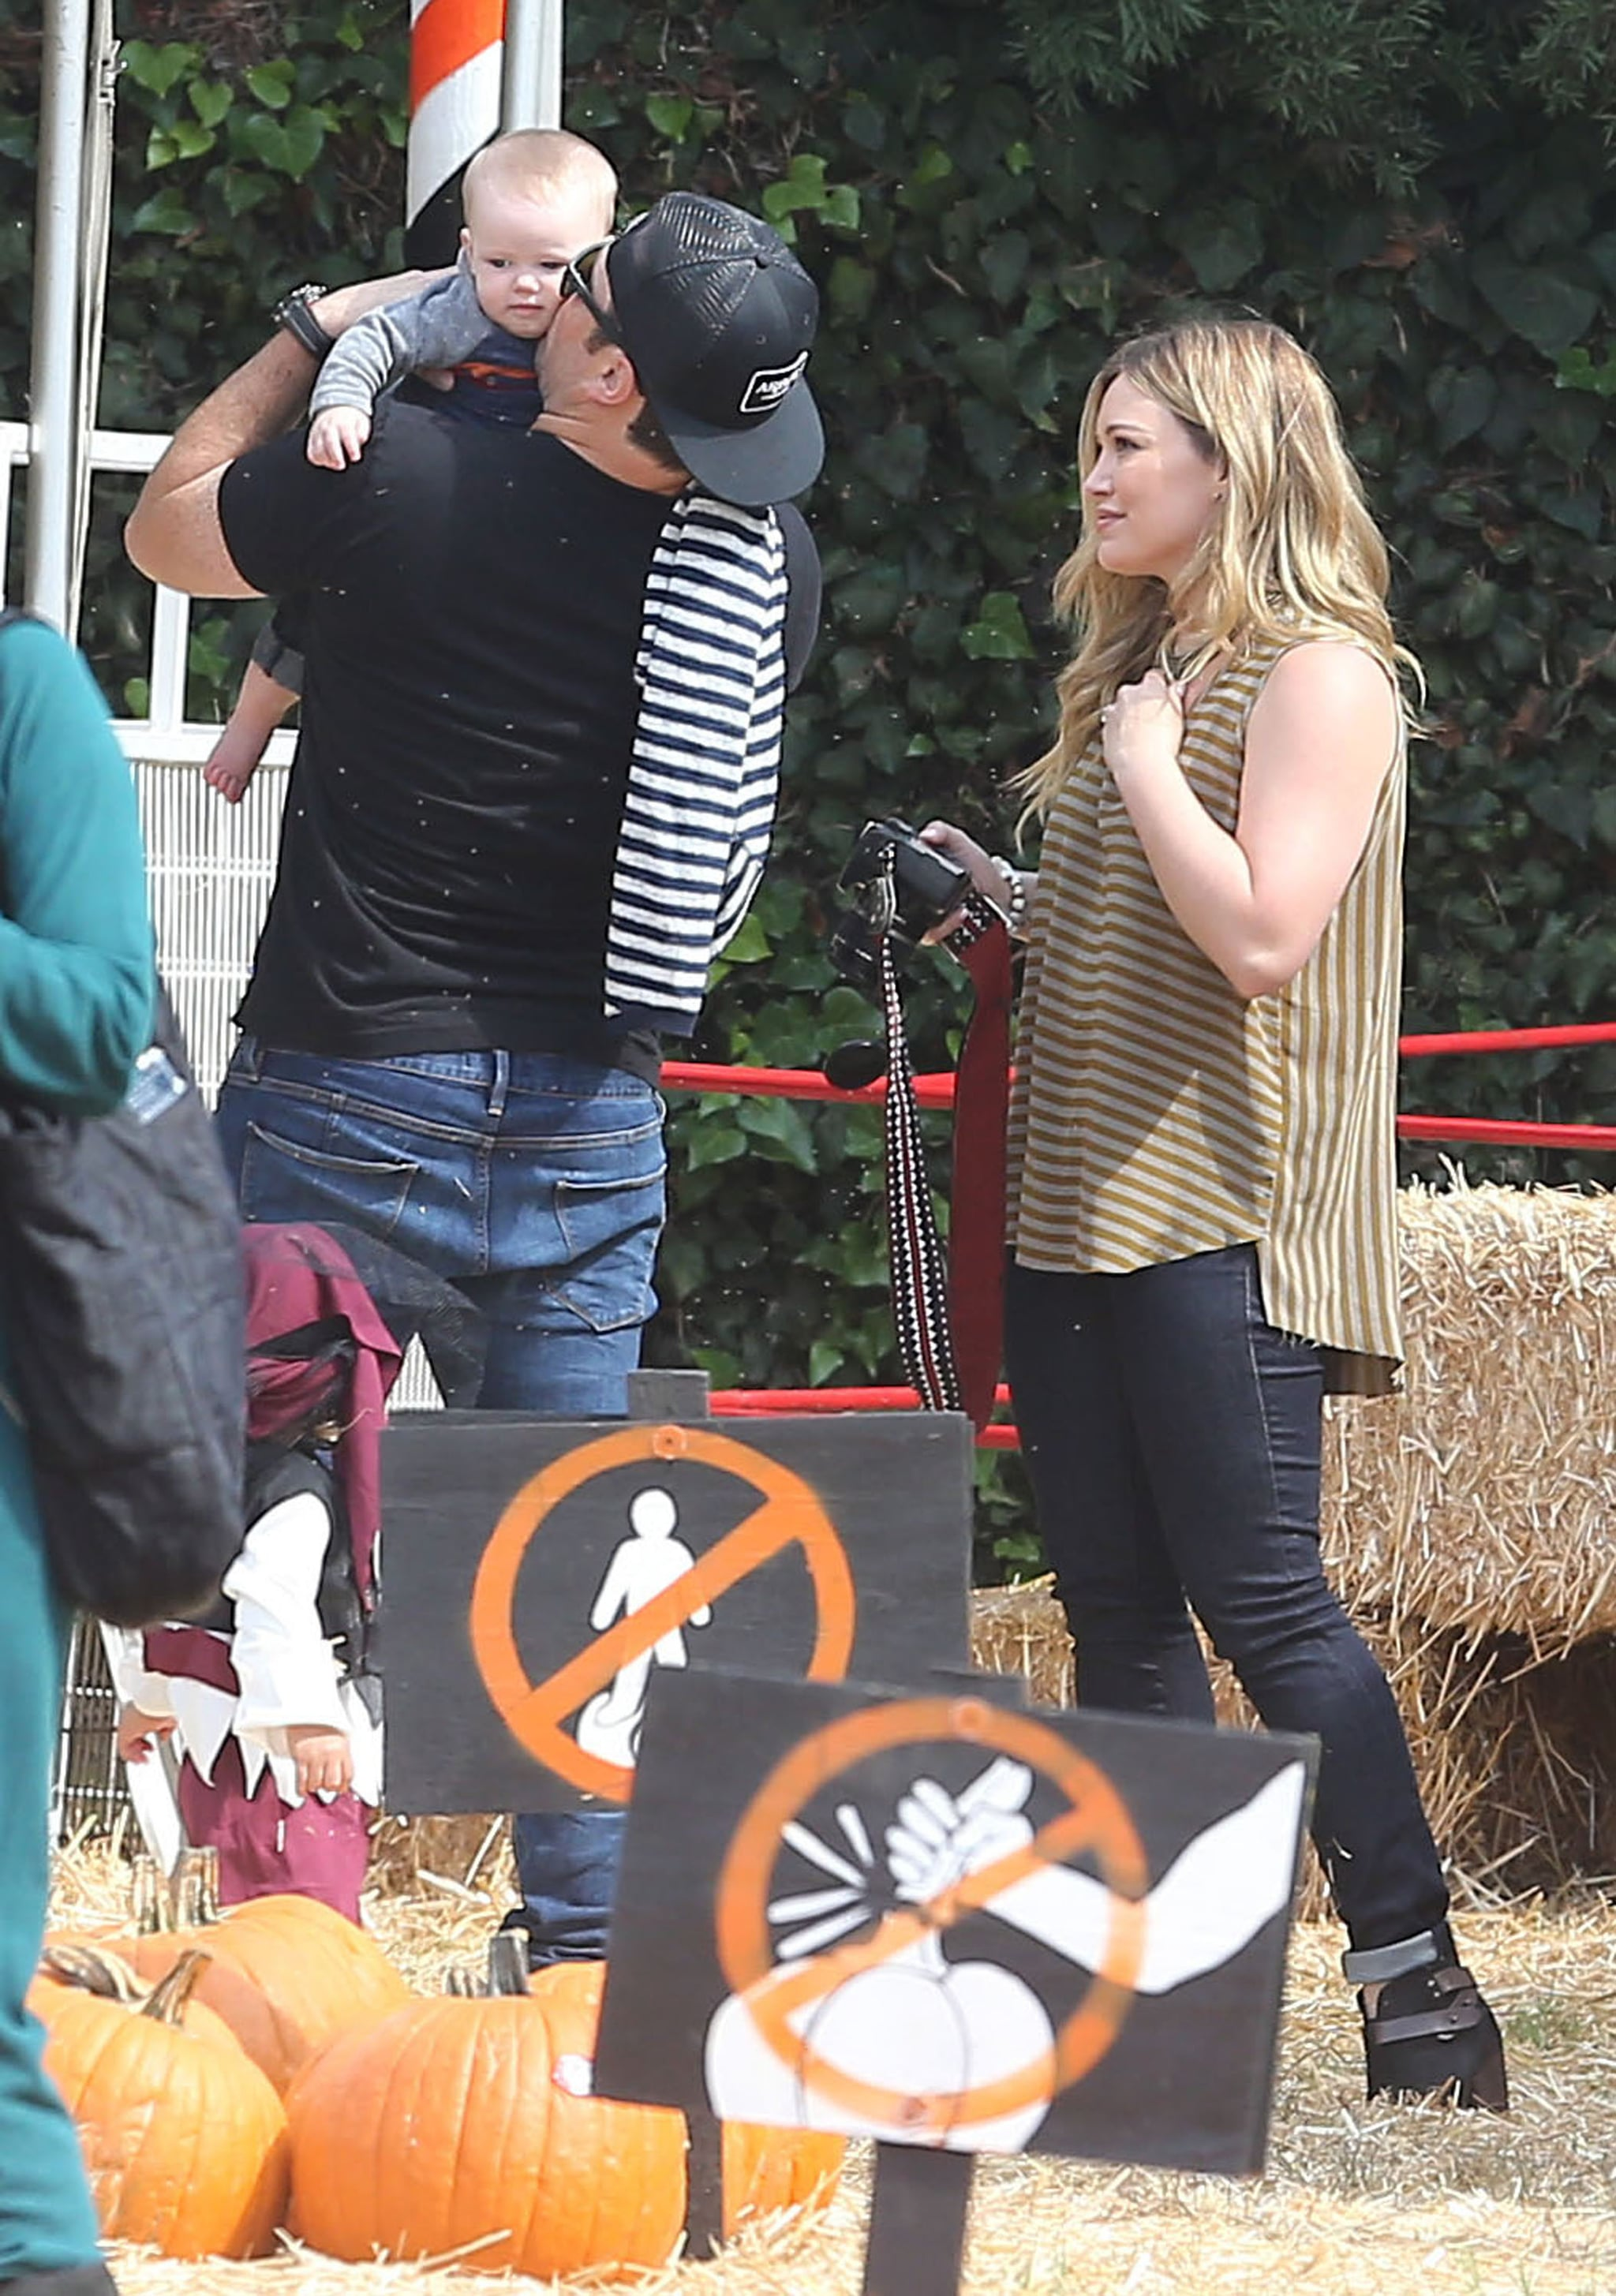 Hilary Duff looked adoringly at her little one, Luca, as dad Mike Comrie gave him a kiss at Mr. Bones Pumpkin Patch in LA.